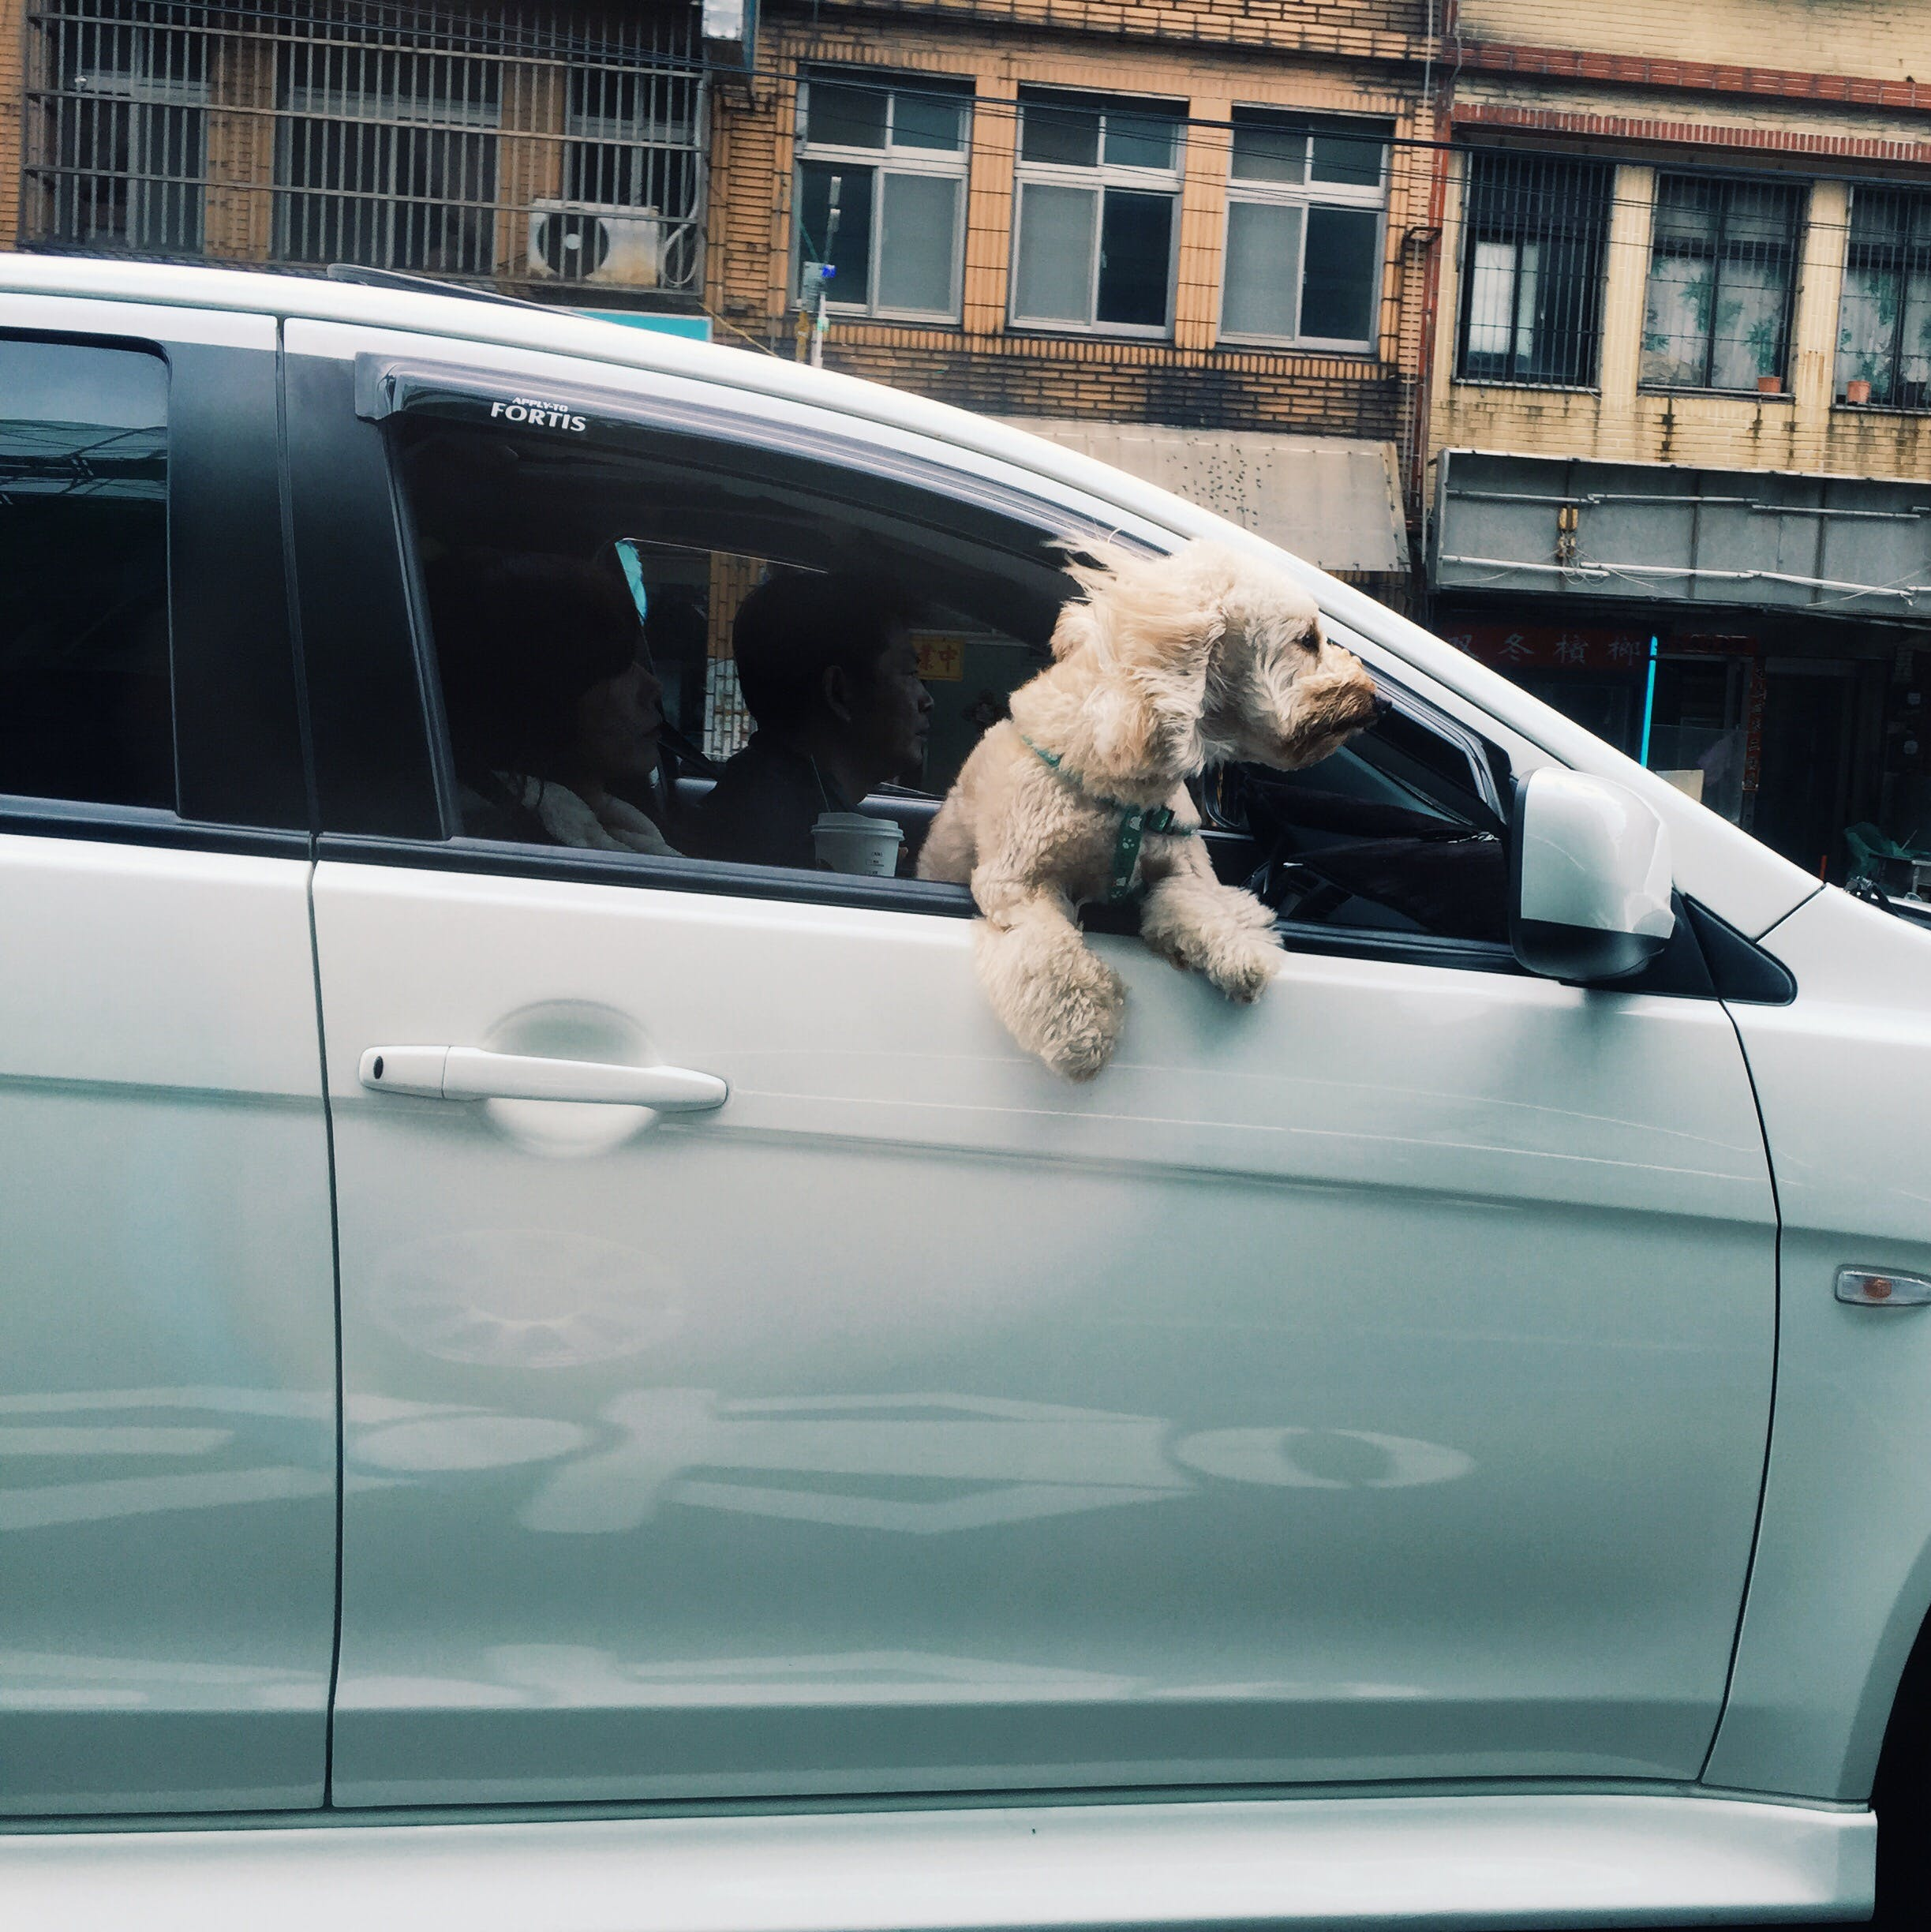 Free stock photo of dog, car, vehicle, window